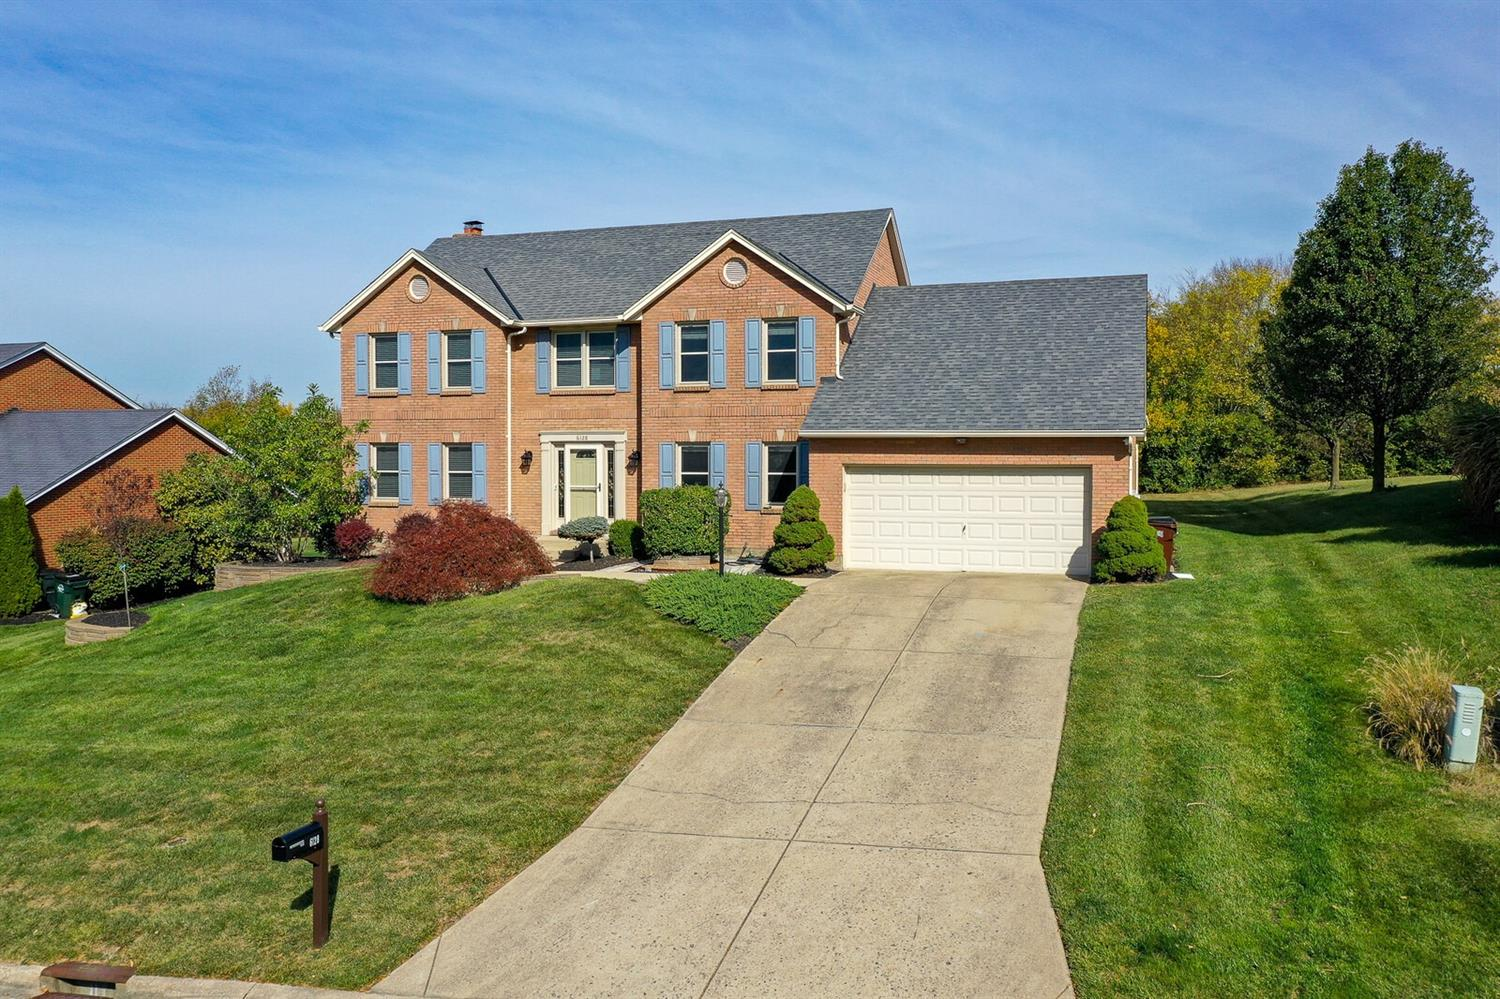 Photo 2 for 6128 Beckett Station Ct West Chester - West, OH 45069